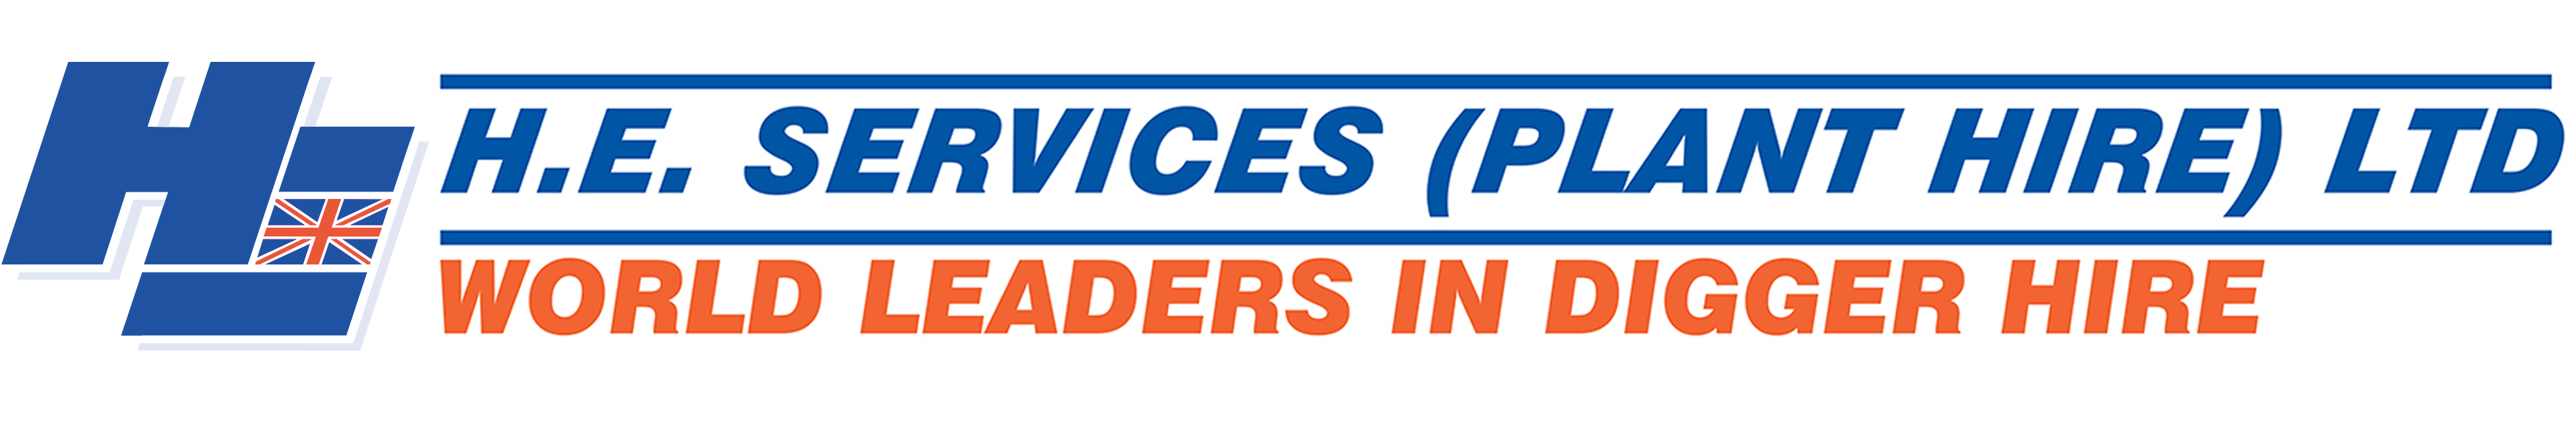 Welcome to H. E. Services Plant Hire